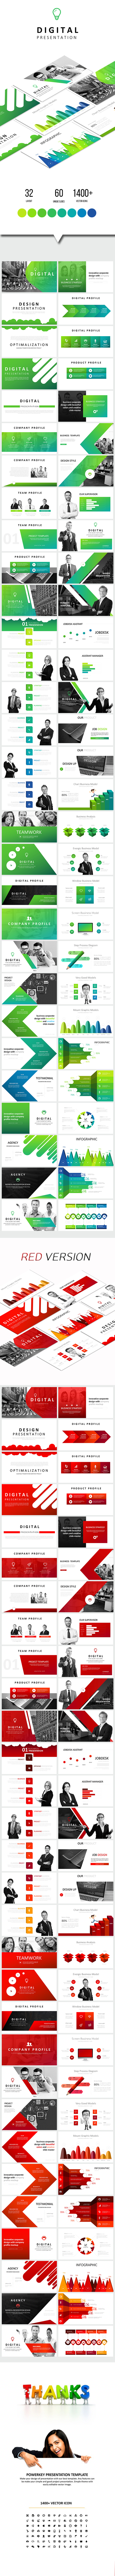 DIGITAL - Powerpoint Business Presentation - Business PowerPoint Templates